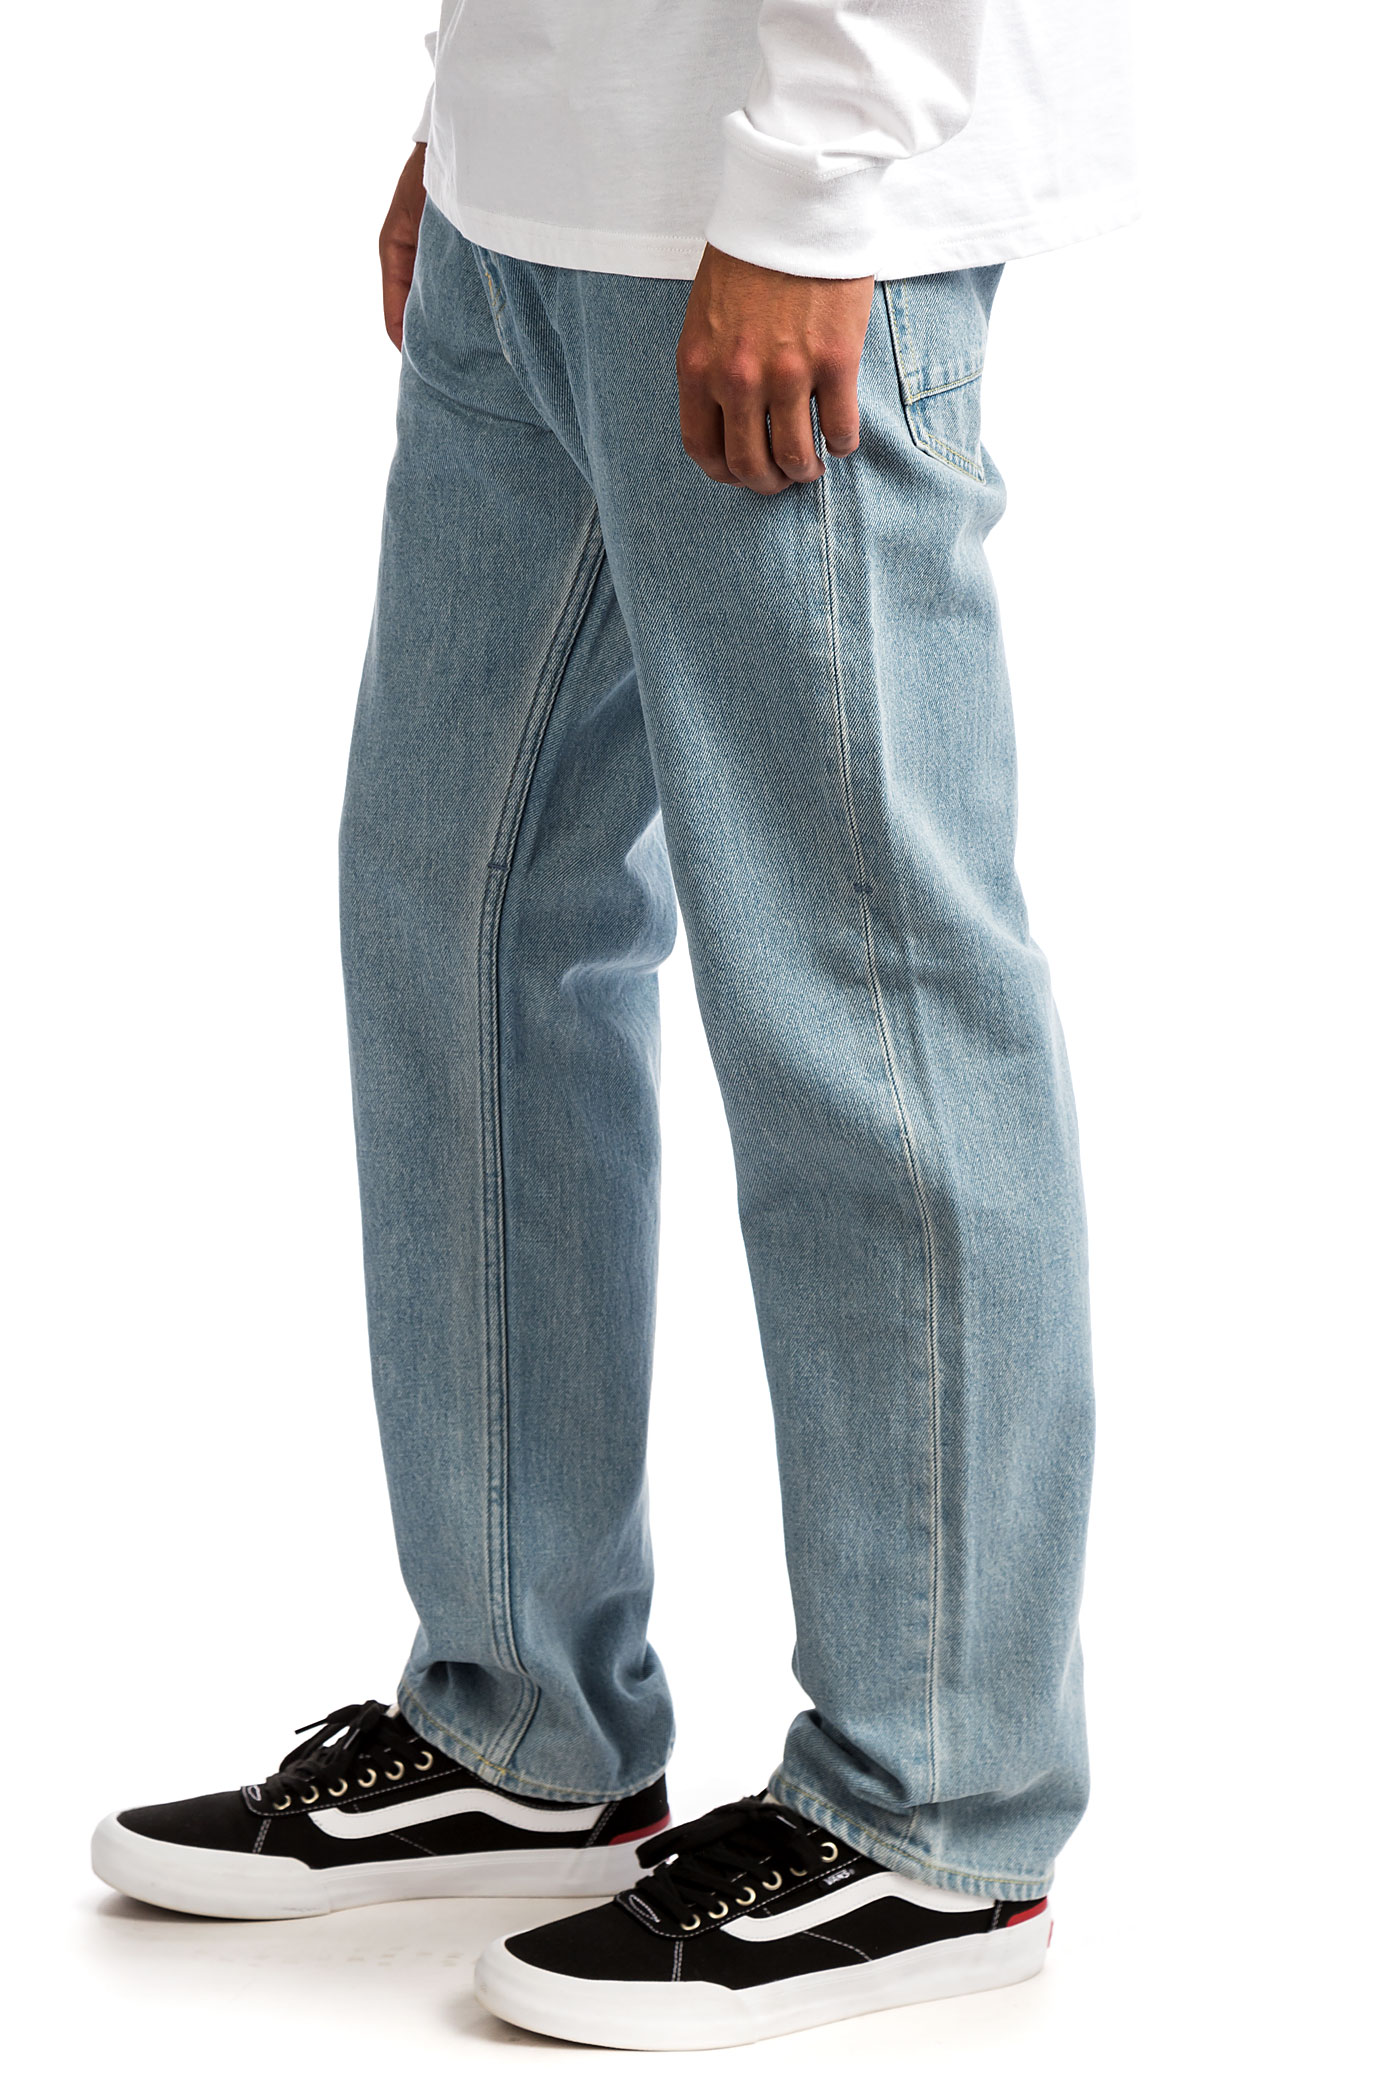 Jeansvintage Jeansvintage Bleach Worker Relaxed Dc Relaxed Worker Bleach Dc kuiwXTOZP